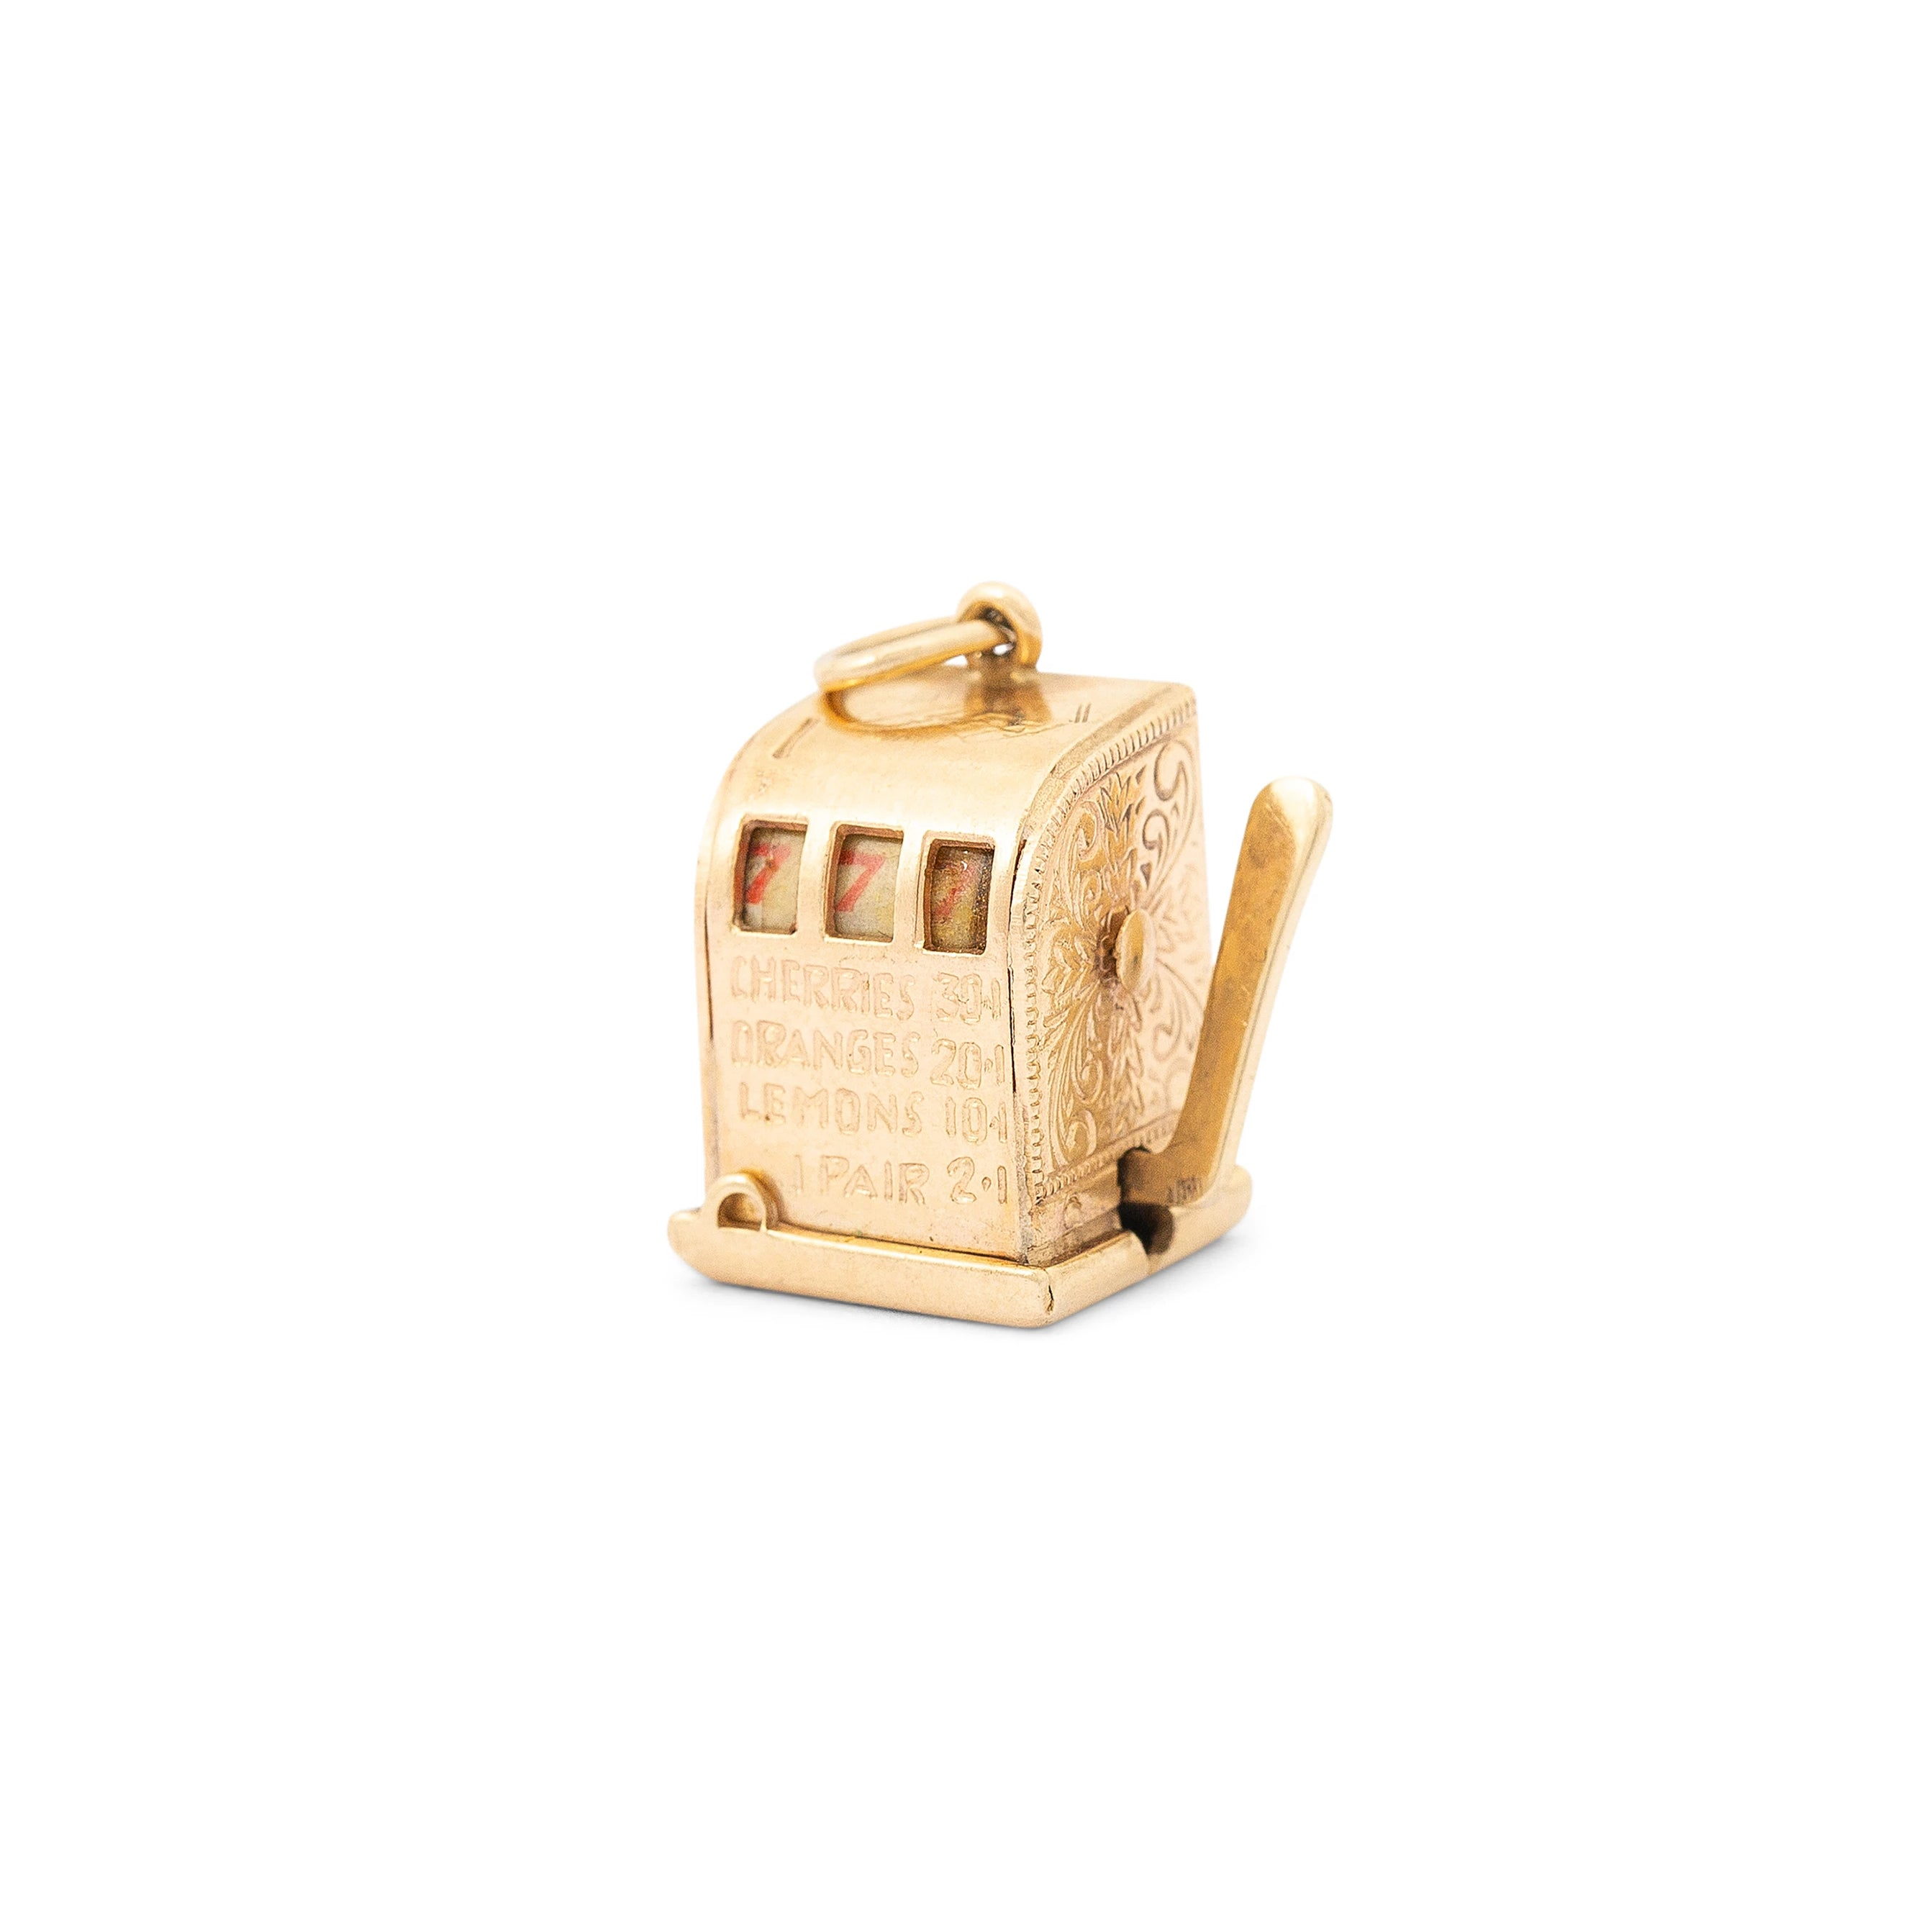 Movable Slot Machine 14K Gold Charm